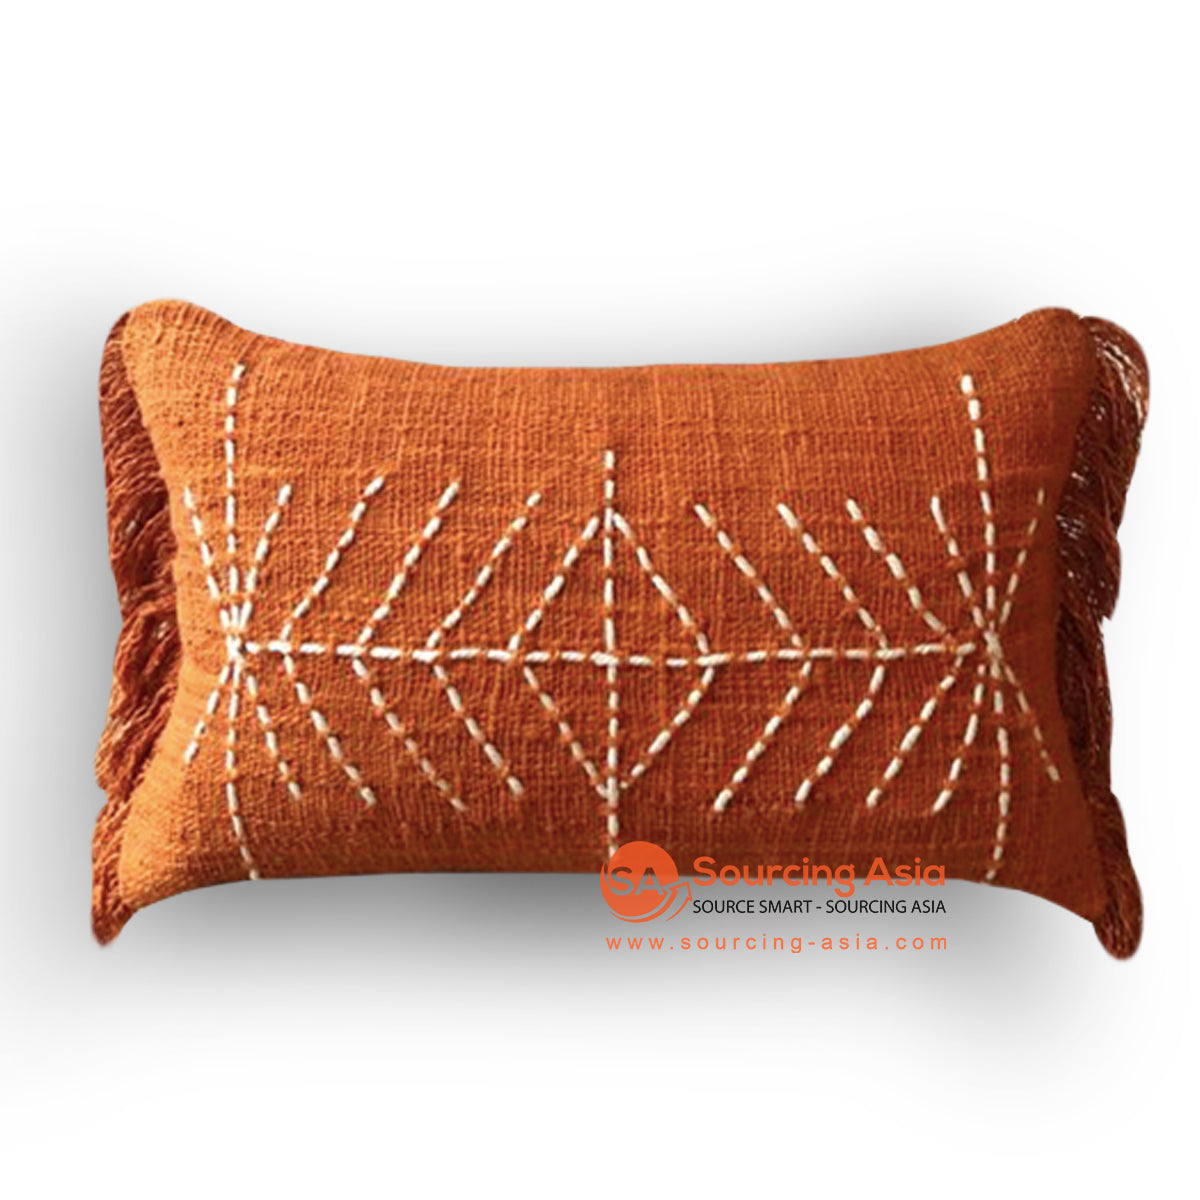 HIP018 HAND STITCHED COVER PILLOW WITH EMBROIDERY 50 X 25 CM